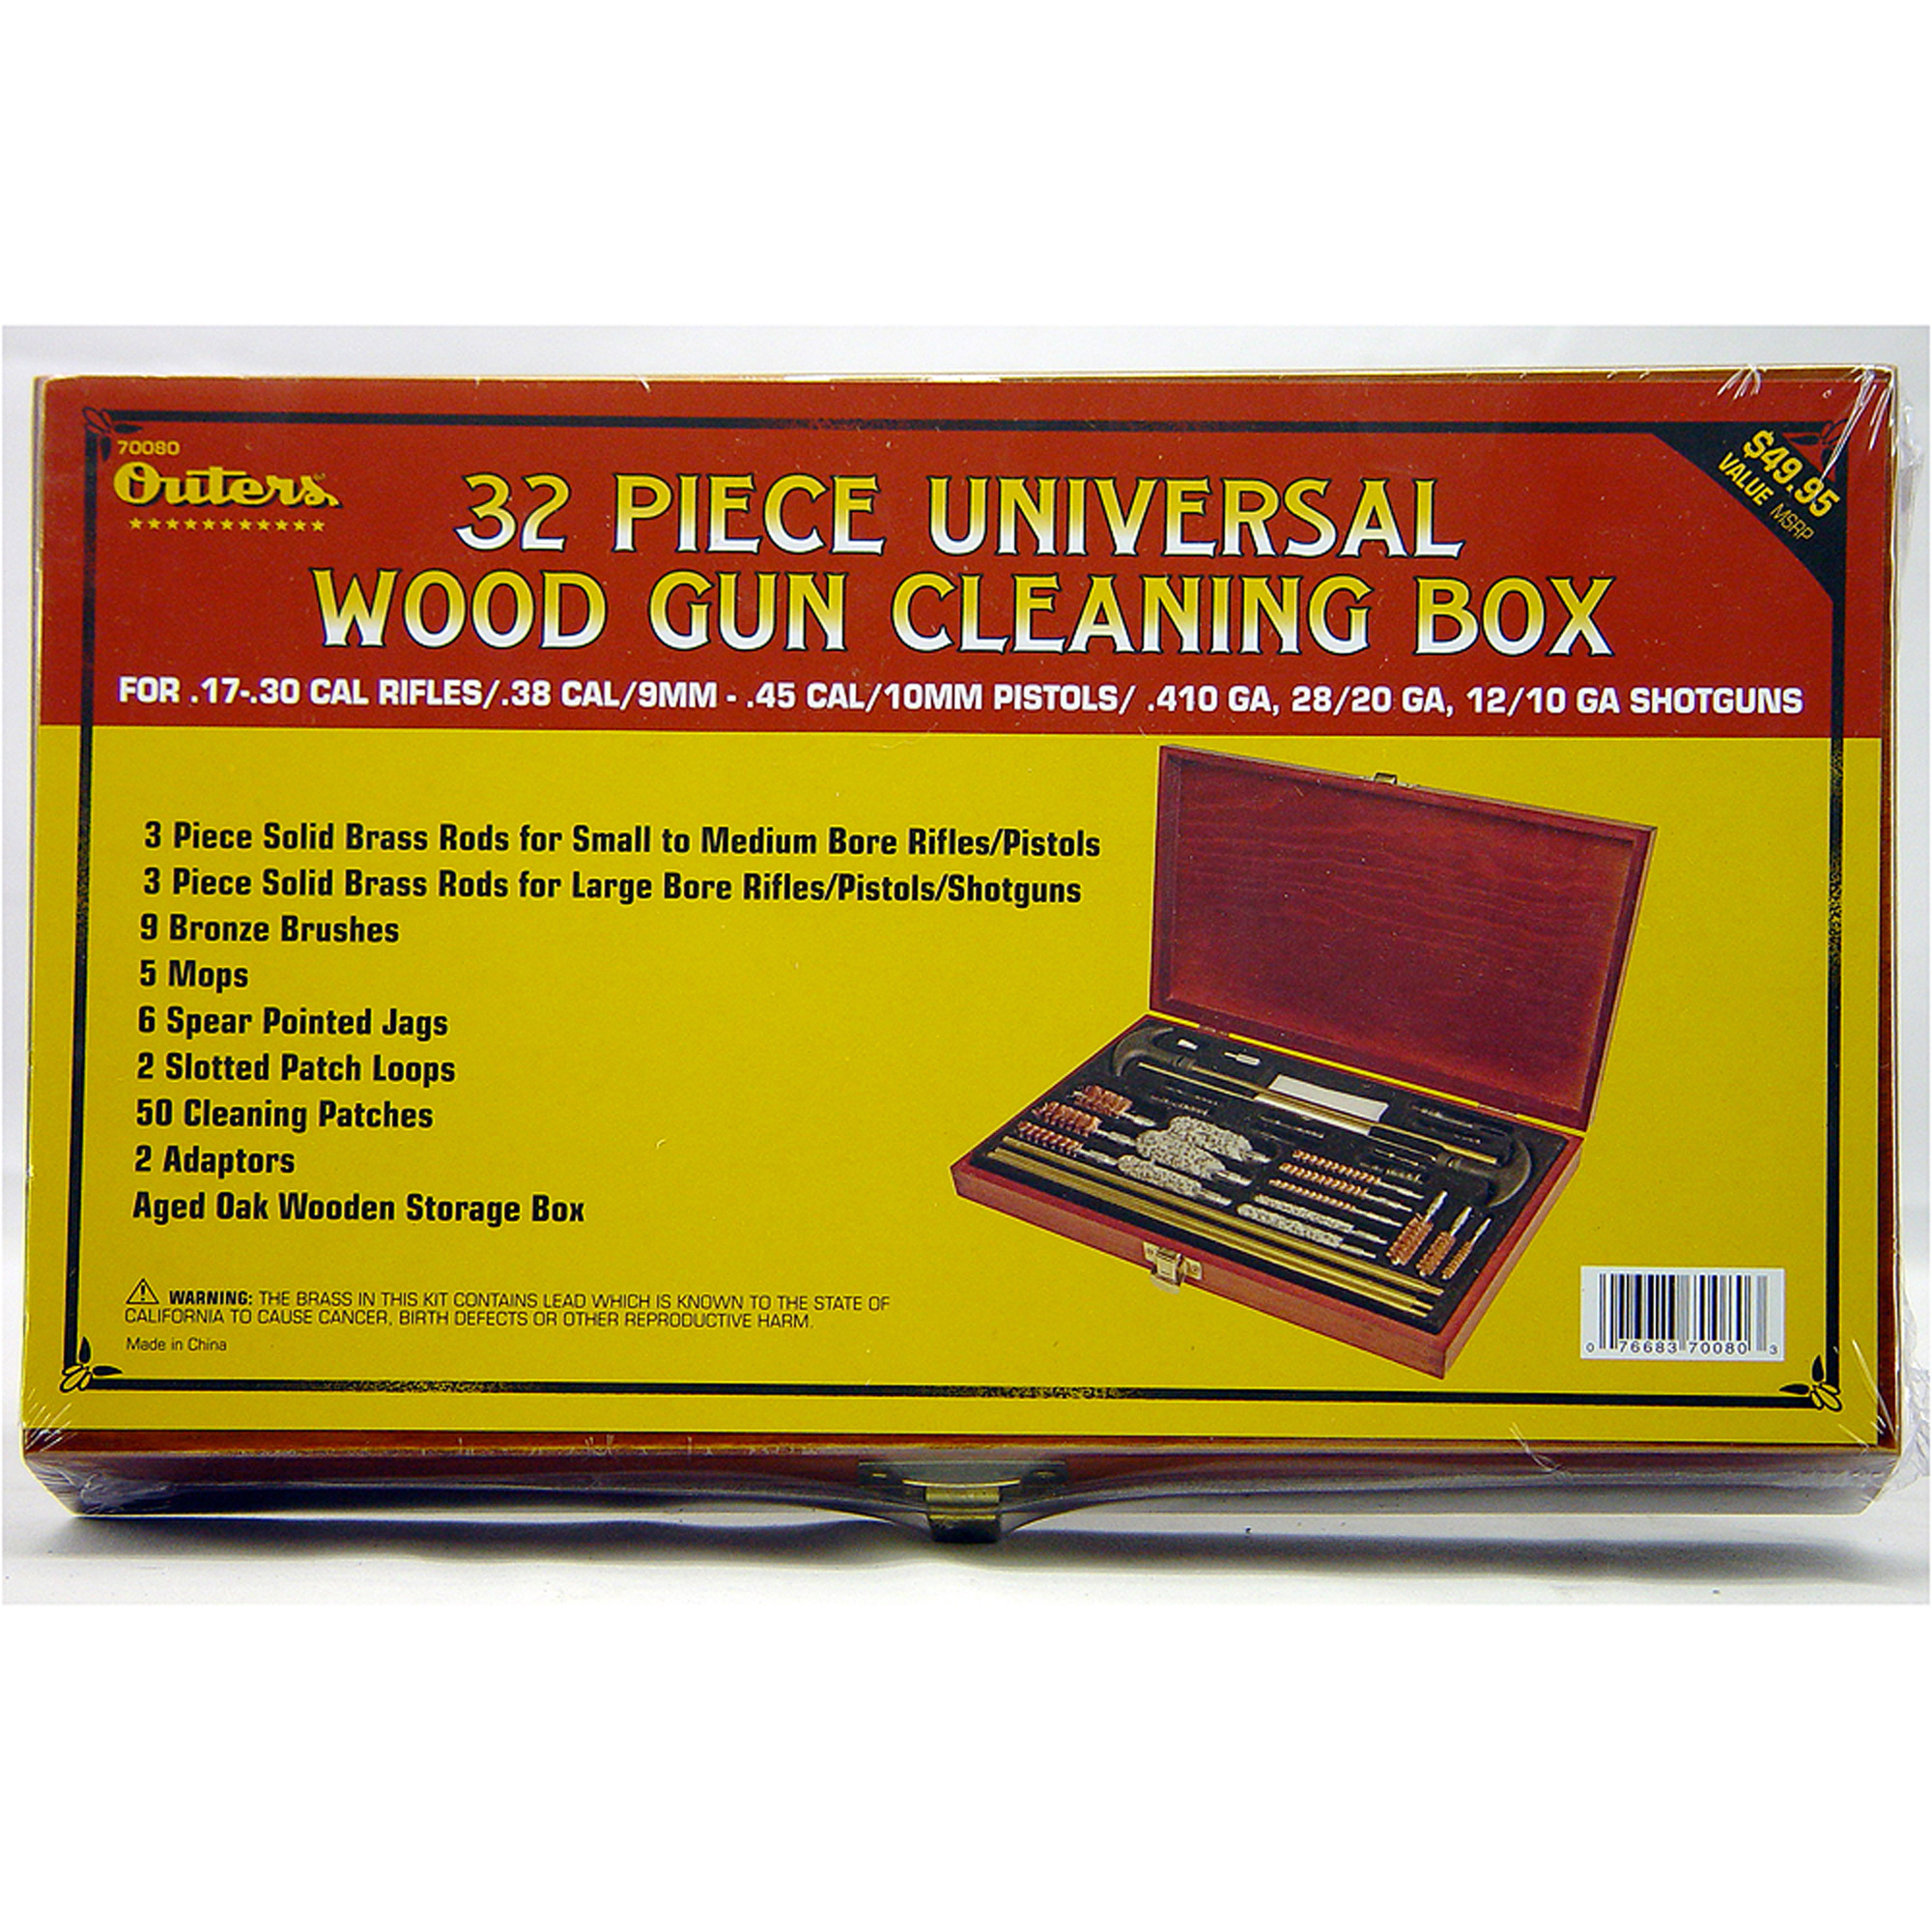 Outers Cleaning Kit for Universal Gun Cleaning, 32-Piece, Wood Box